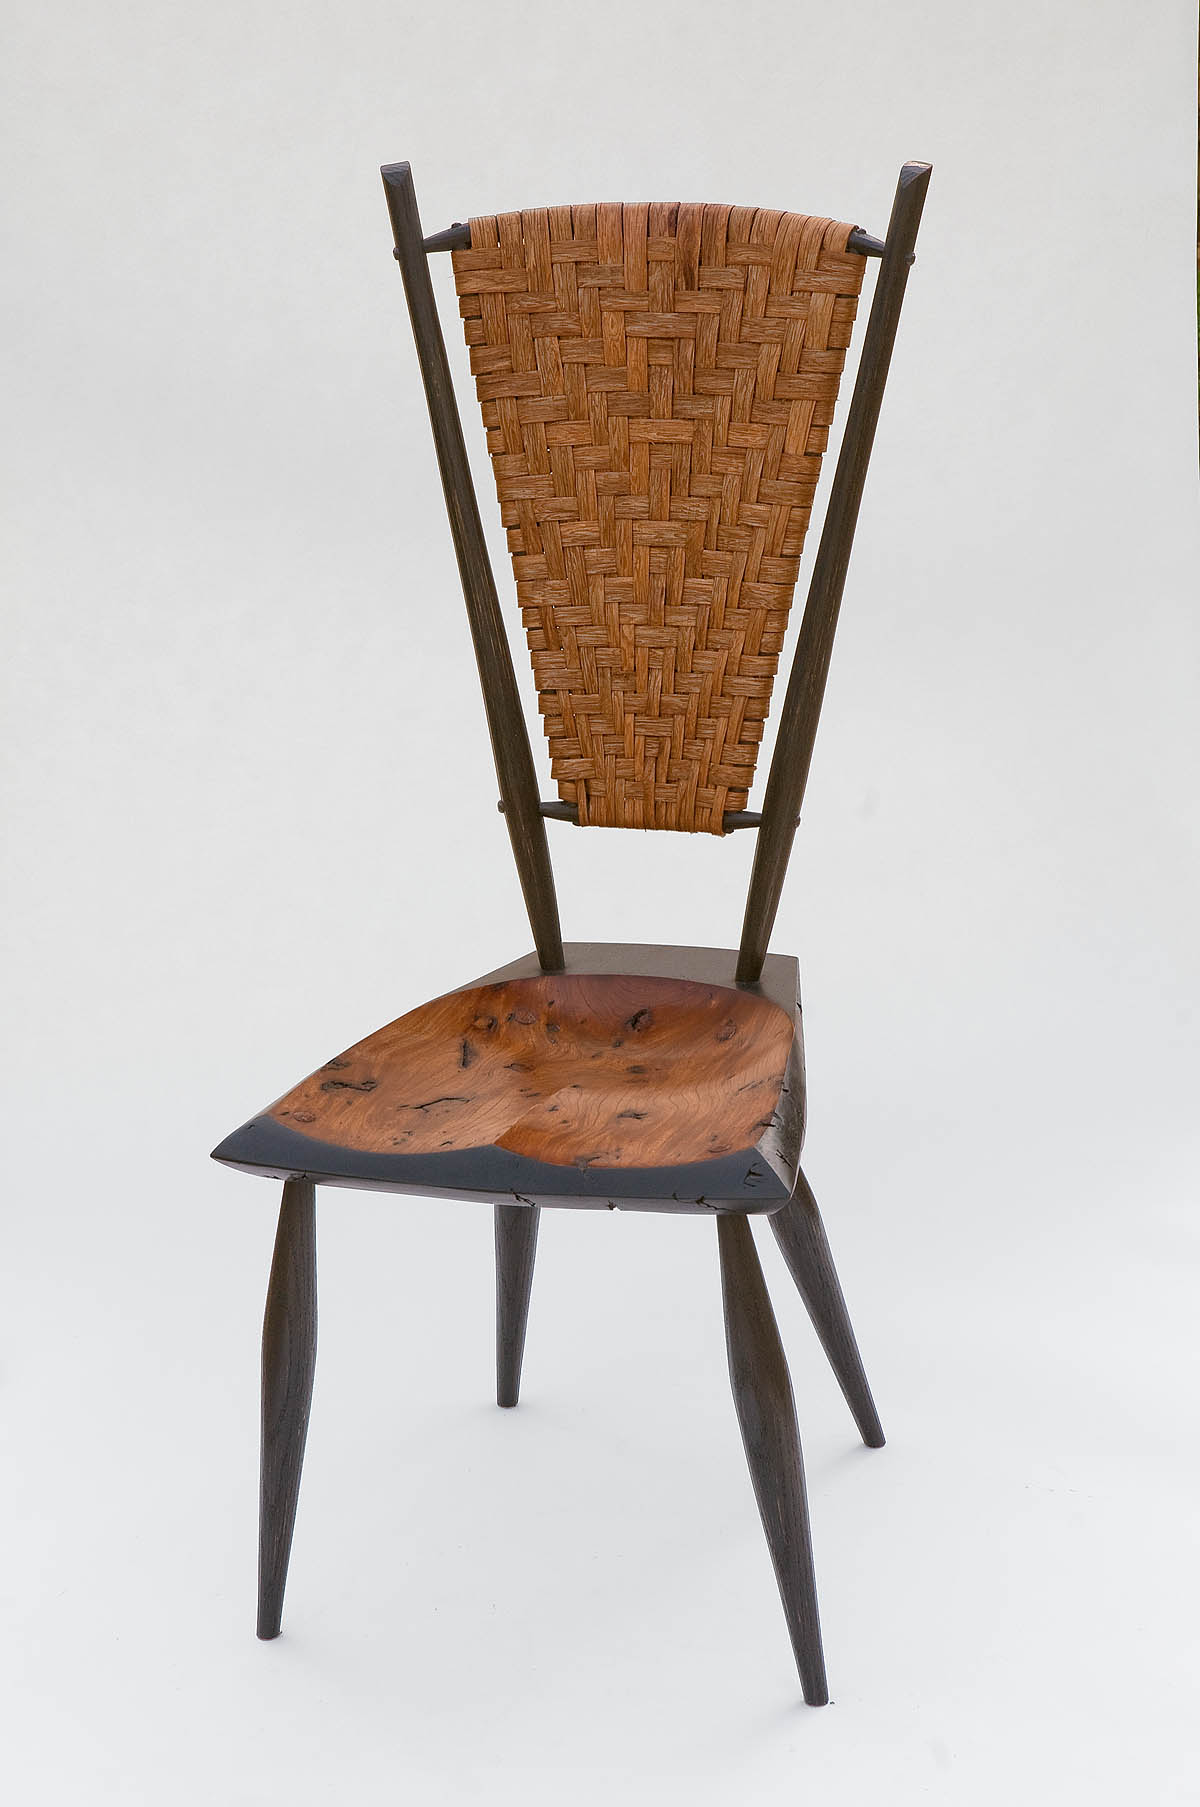 East Tennessee chairmaker Curtis Buchanan was invited to show this bold design, which mixes the Windsor chairs he usually builds with the chairs he teaches as part of the GreenWood Project.